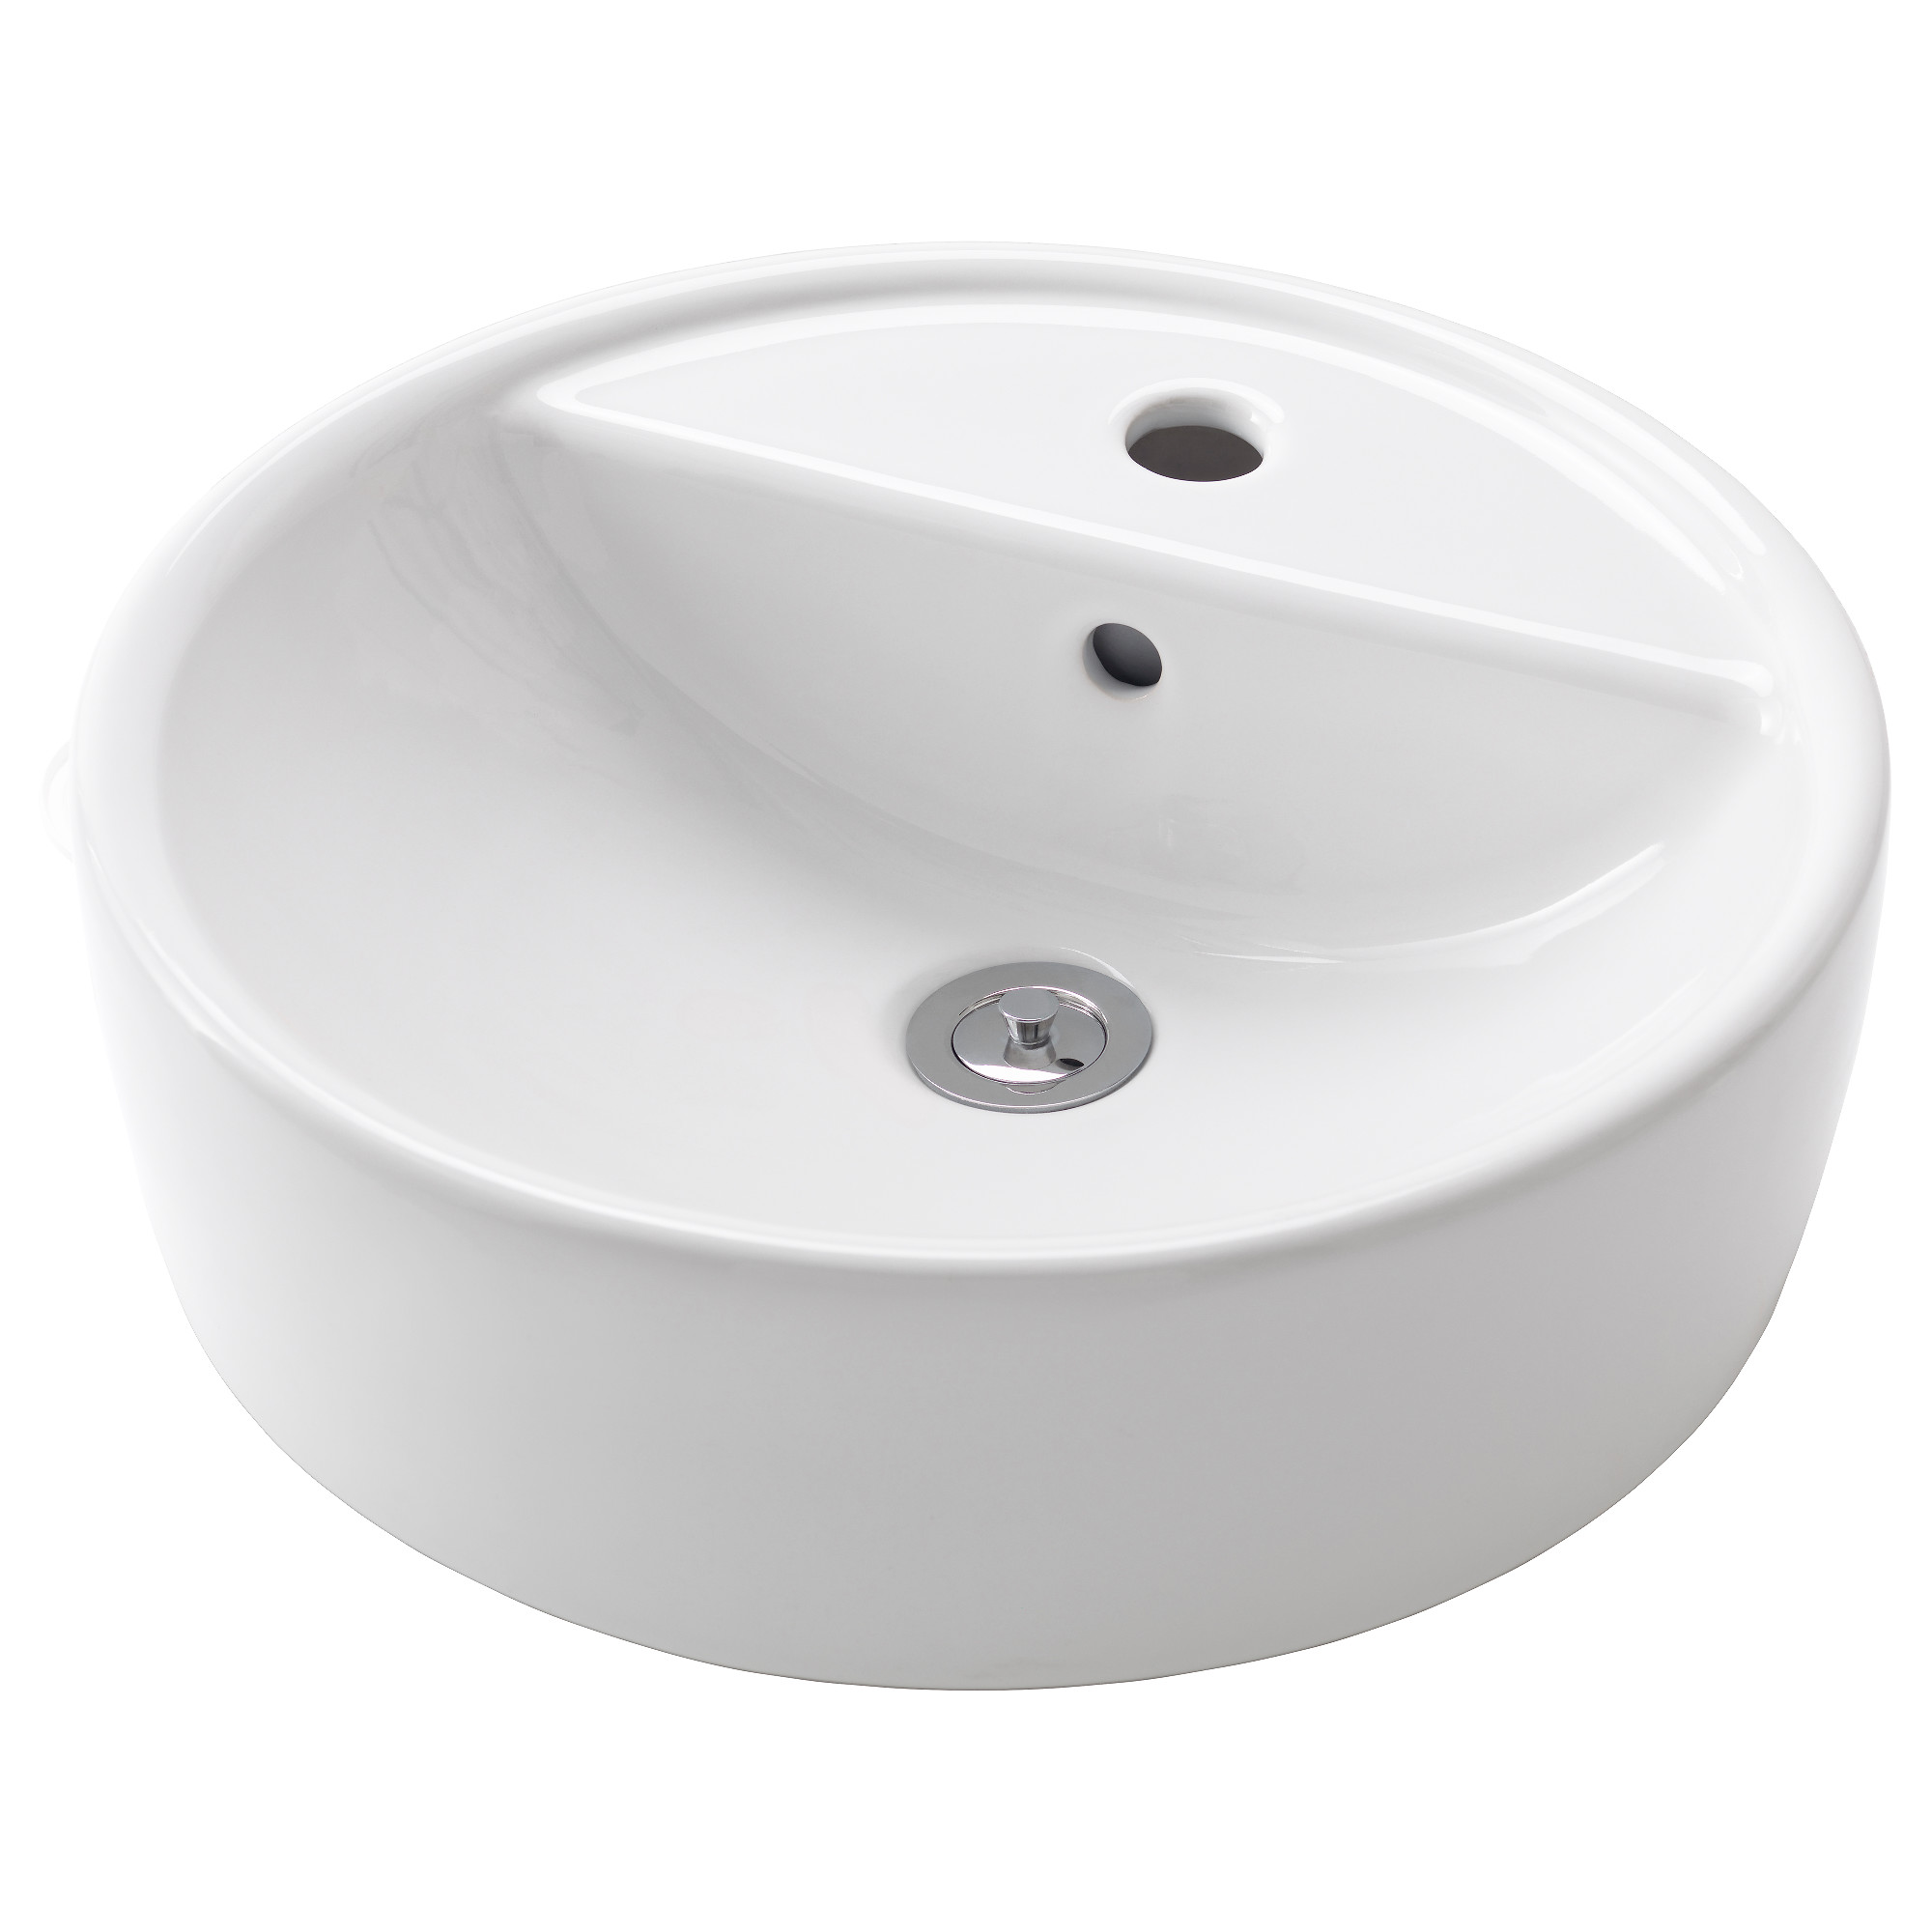 T Rnviken Countertop Sink White Height 5 1 2 Diameter 17 3